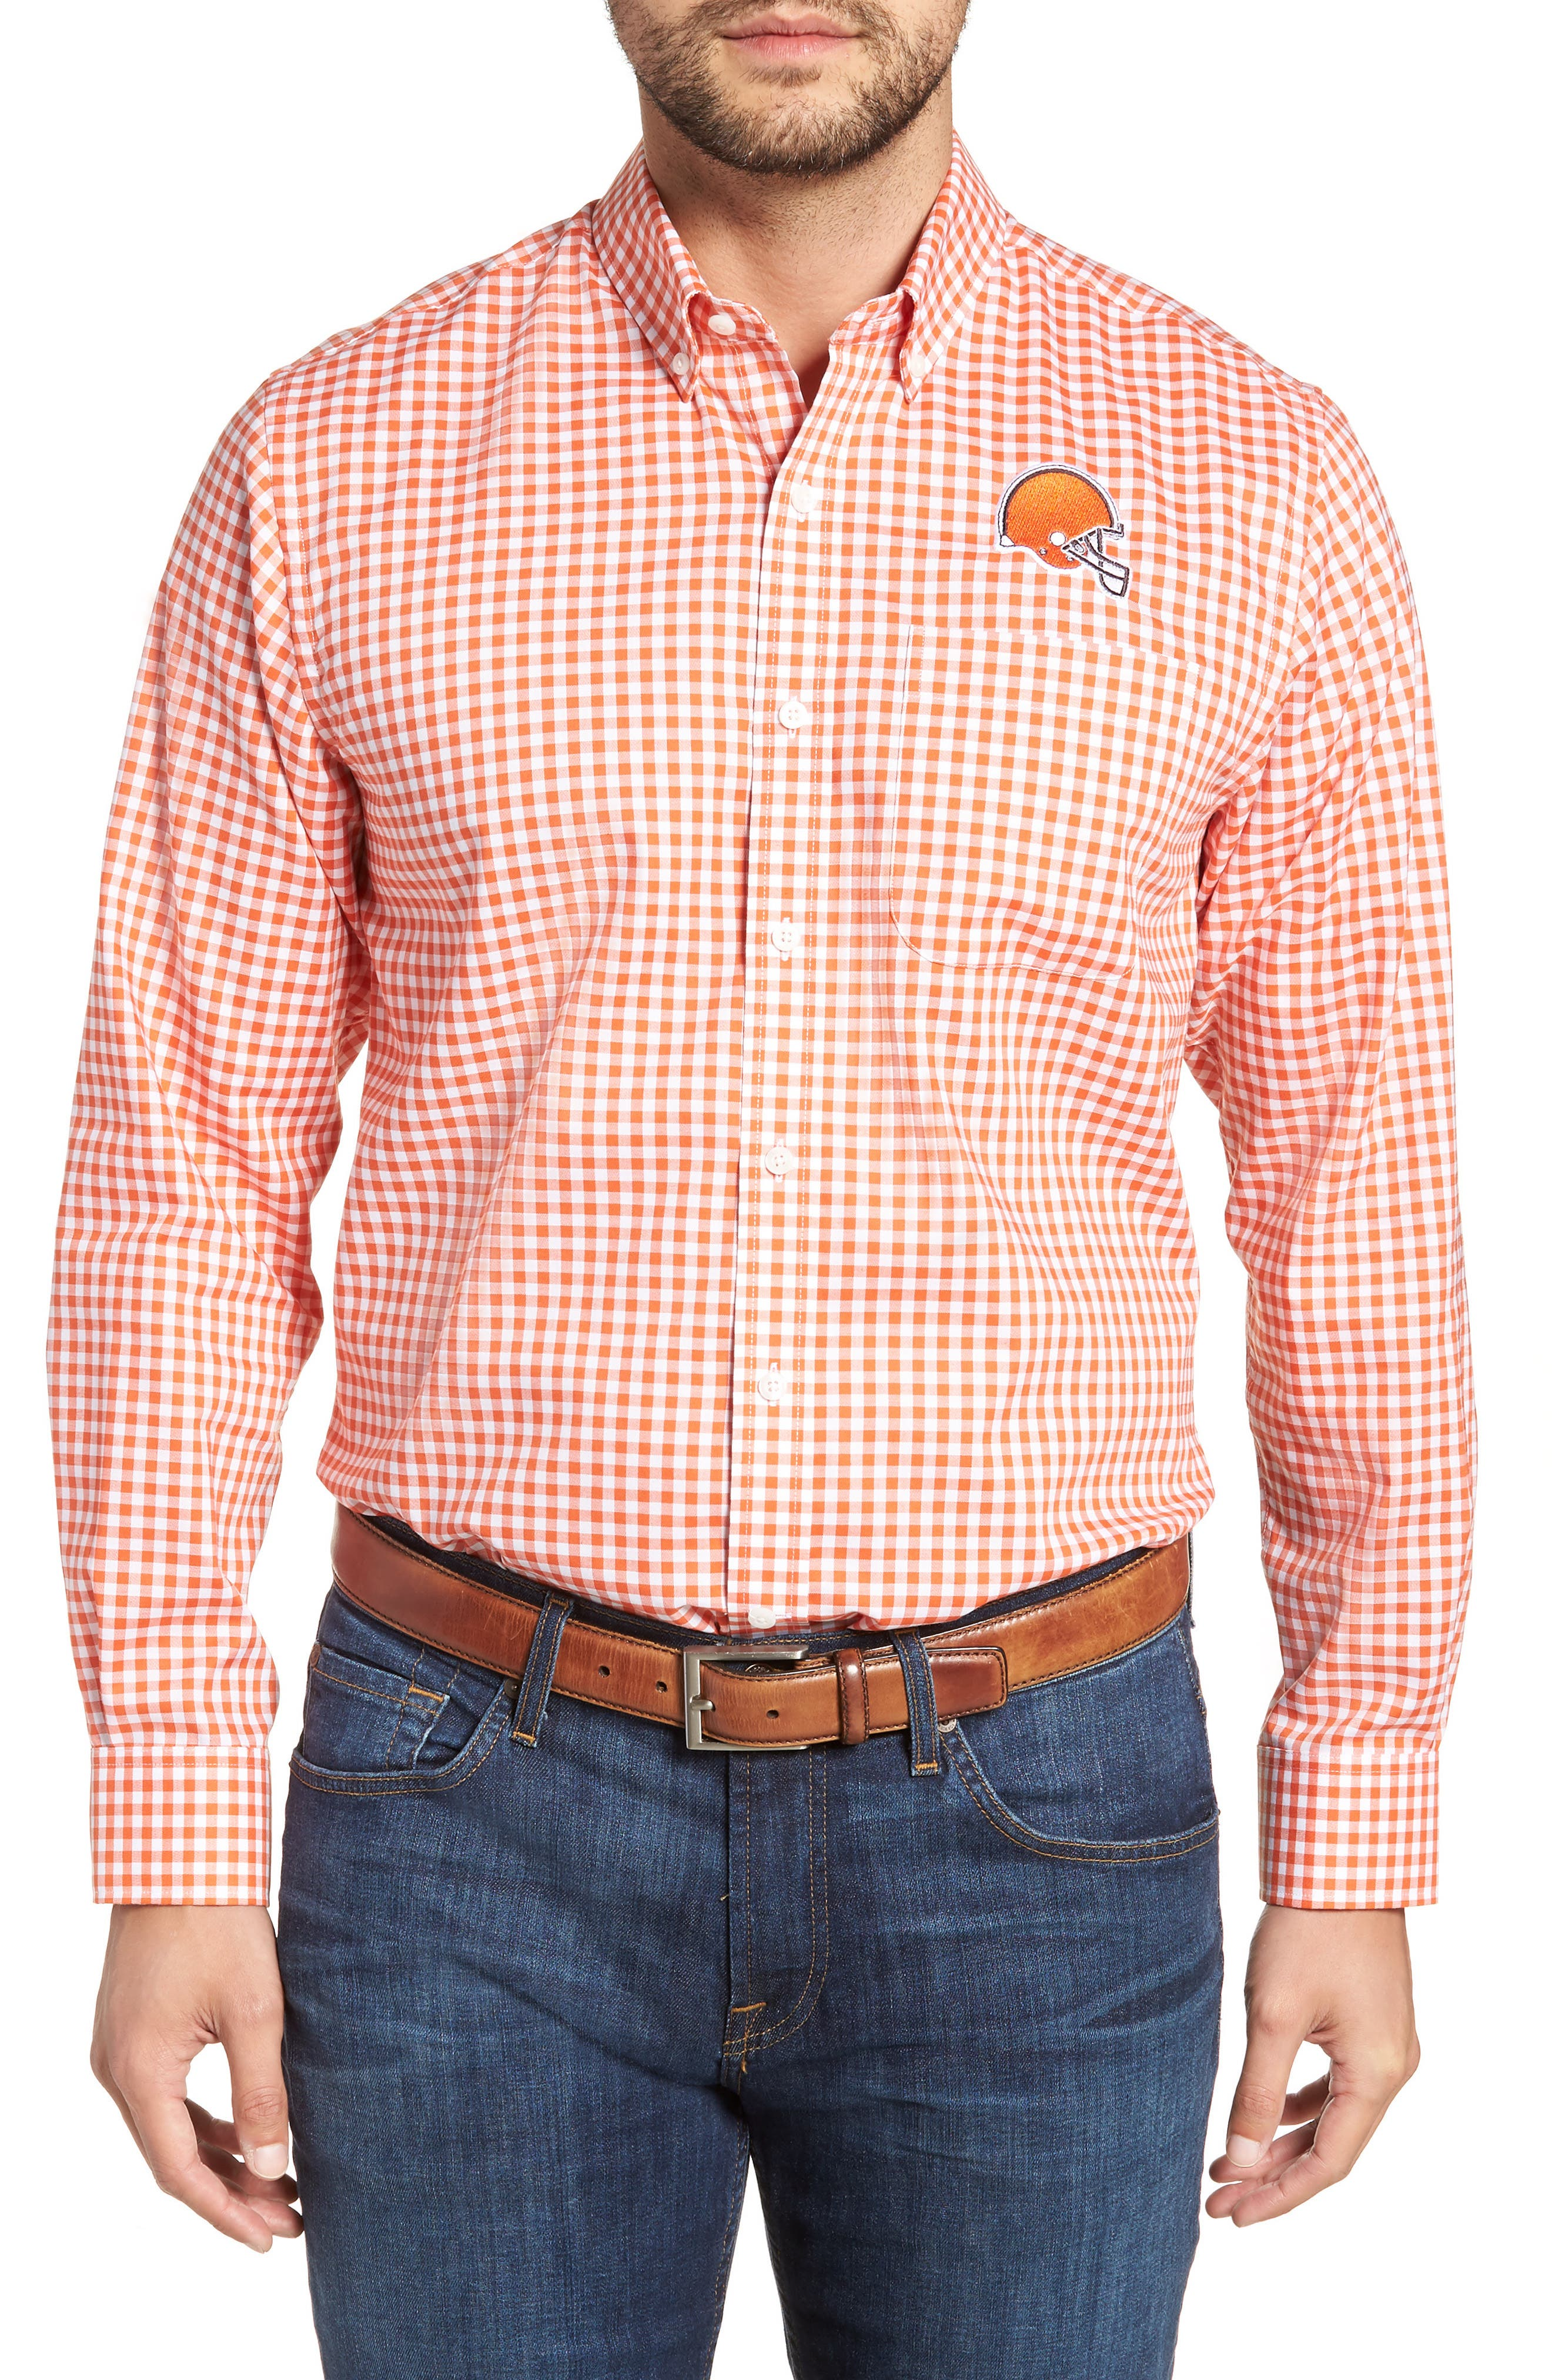 League Cleveland Browns Regular Fit Shirt,                             Main thumbnail 1, color,                             COLLEGE ORANGE